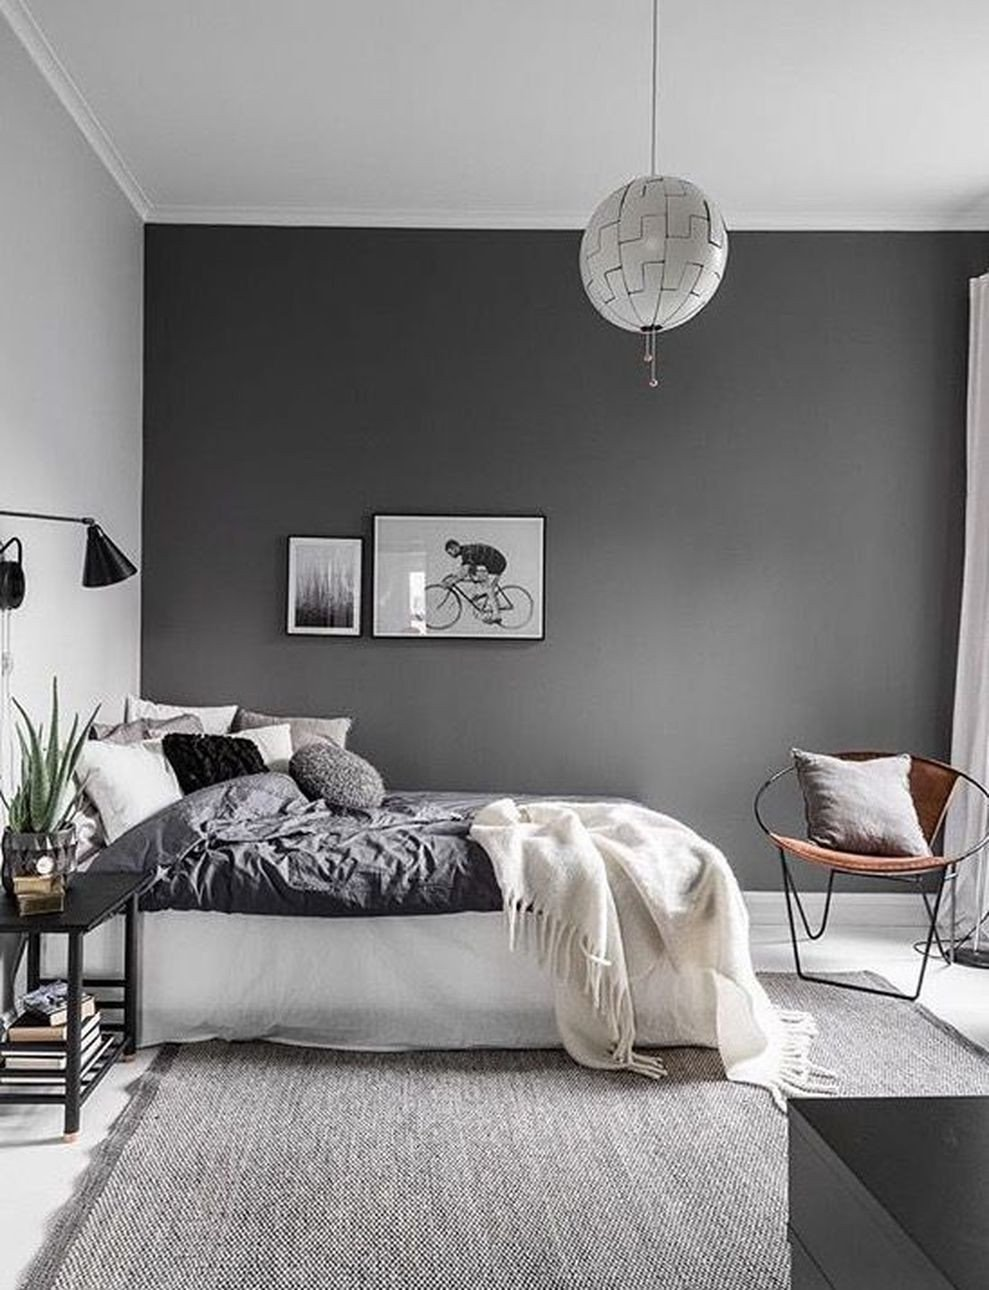 Gray and Brown Bedroom Inspirational 30 Stylish Gray Living Room Ideas to Inspire You